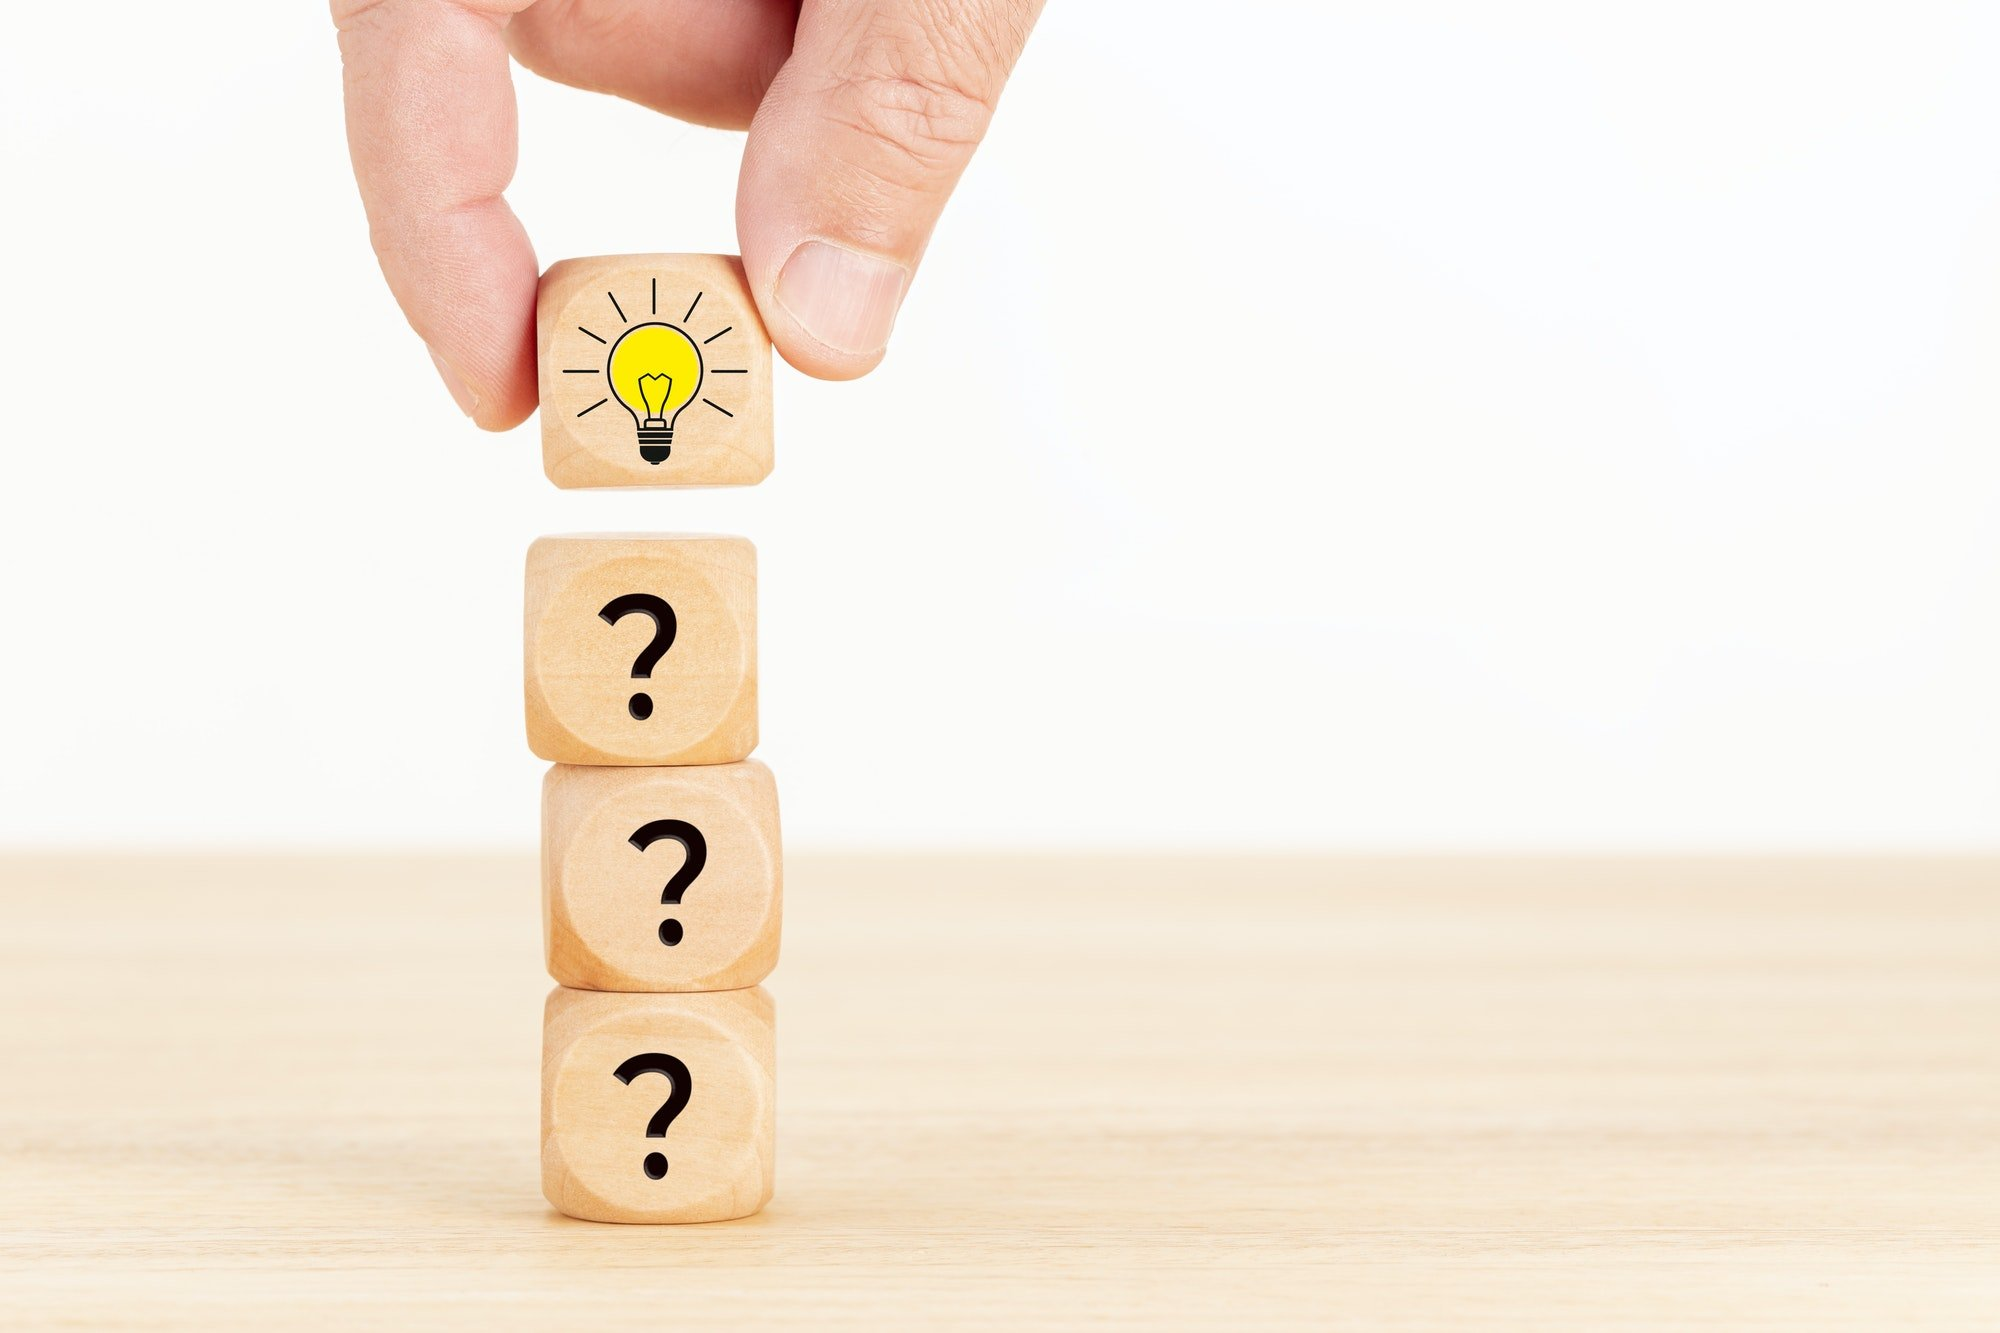 PickFu and MBA students: Stack of wooden cubes printed with question marks and a light bulb icon